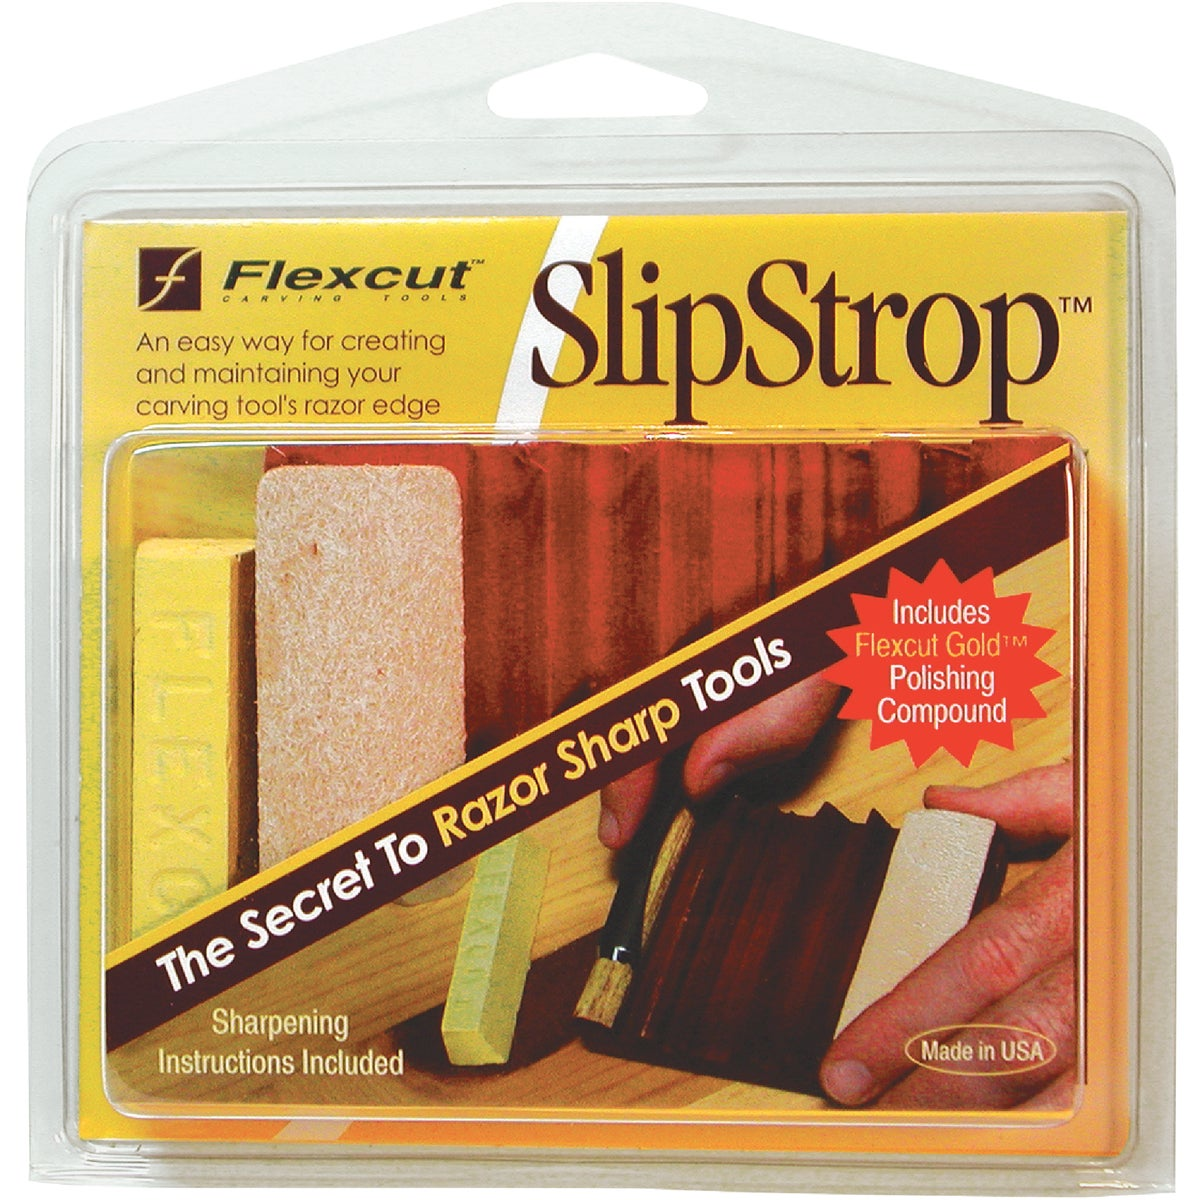 CARVING SHARPENING KIT - PW12 by Flexcut Tool Co